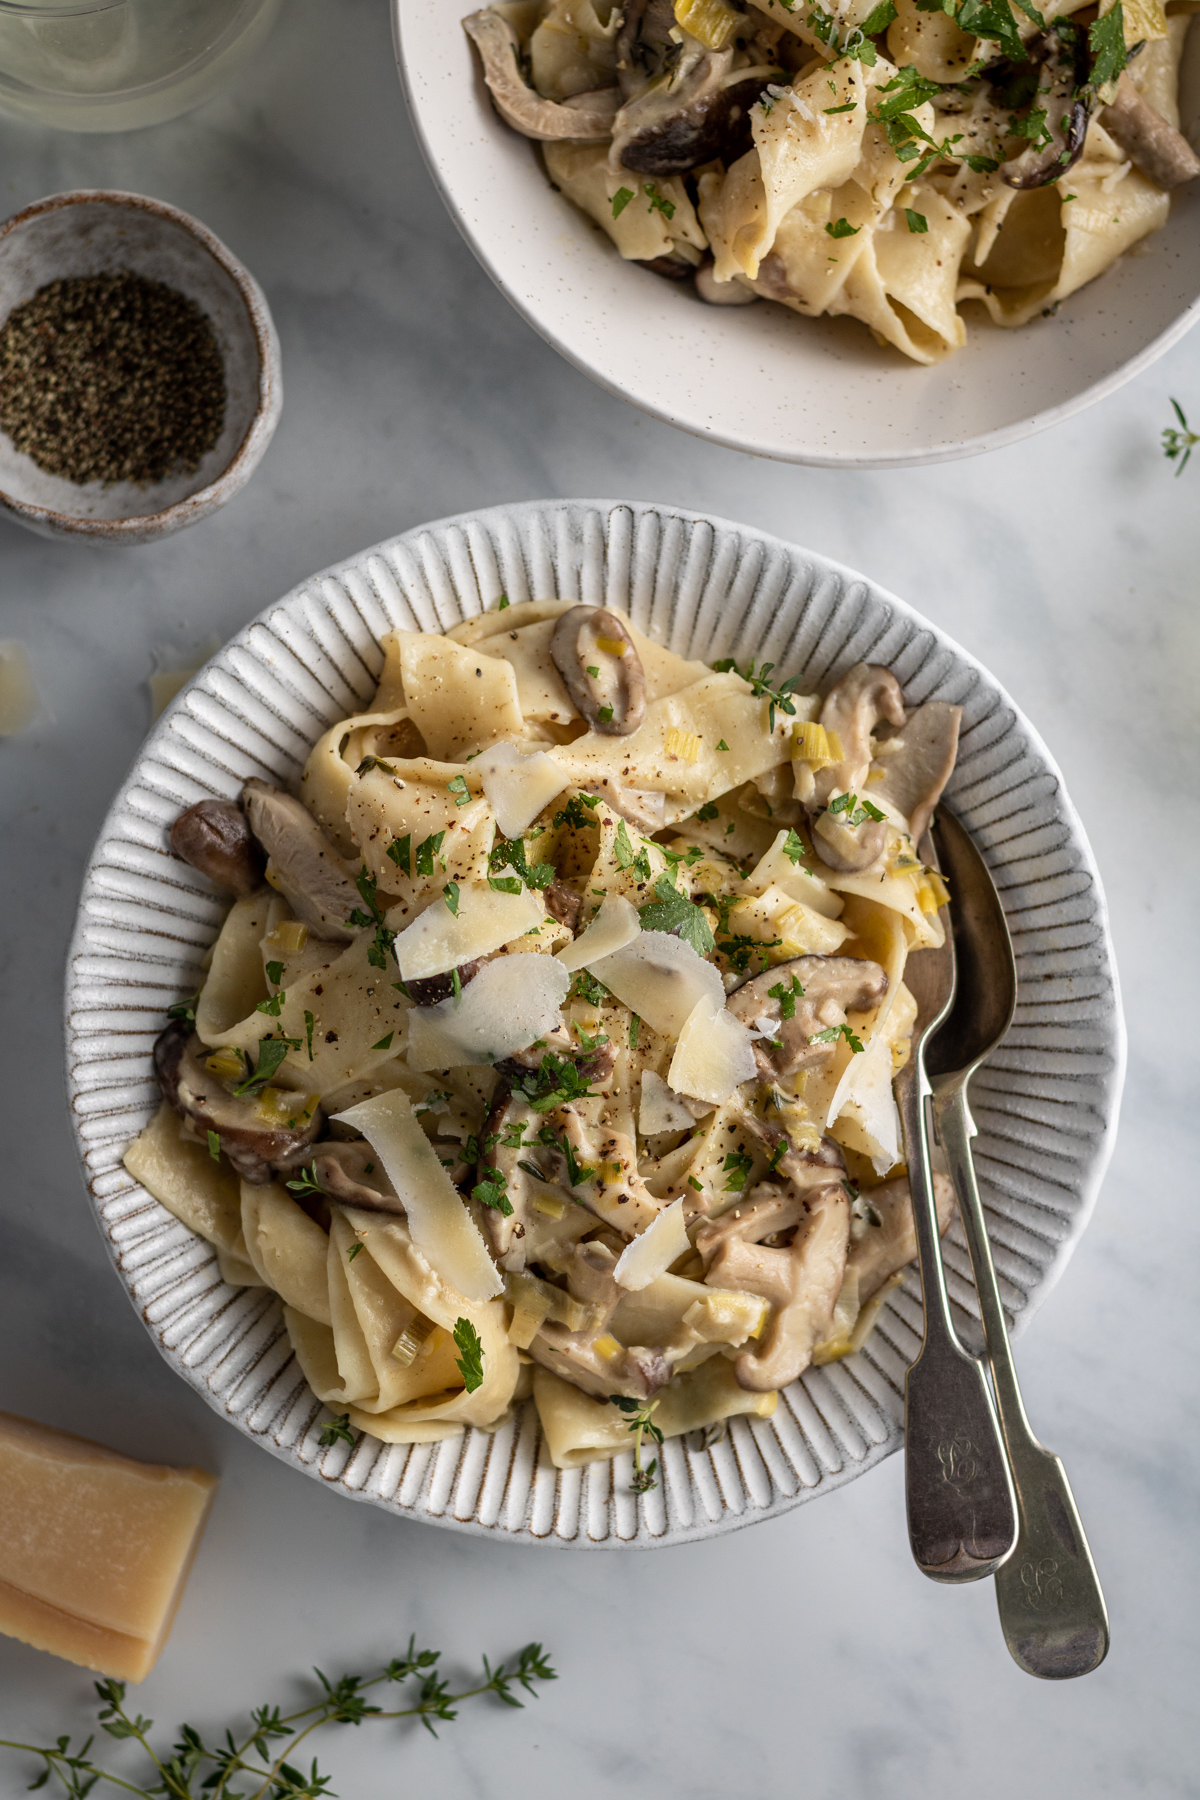 Creamy Mushroom And Leek Pasta The Last Food Blog